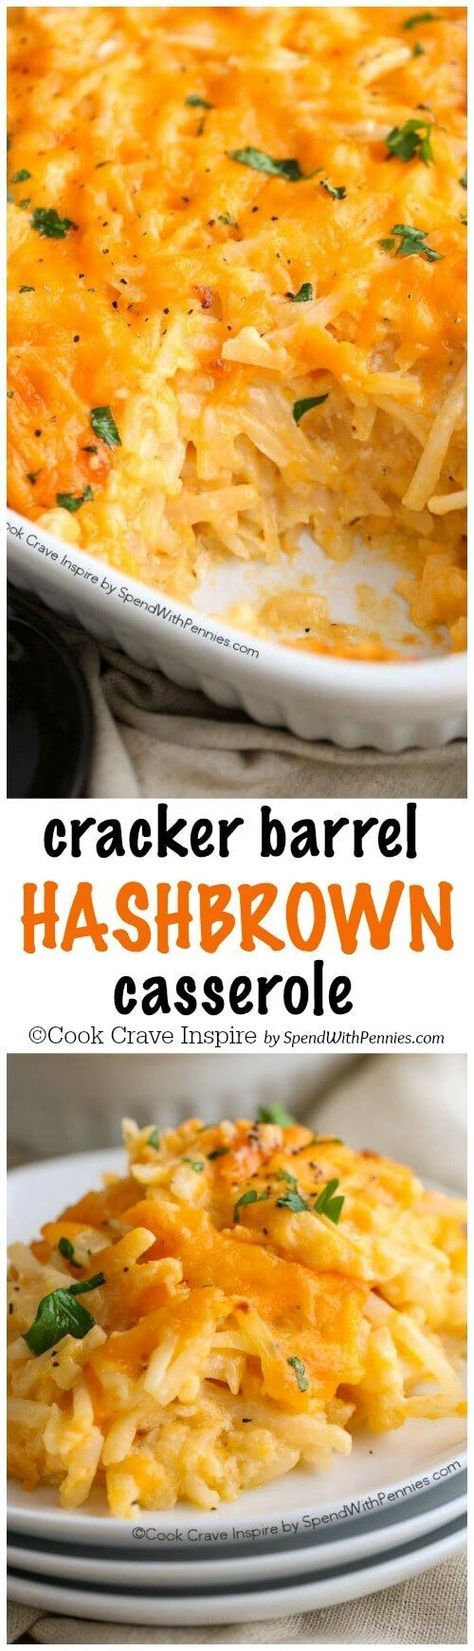 Cracker Barrel Hashbrown Casserole - Very good...big hit at my dinner party. So versatile...breakfast or dinner!